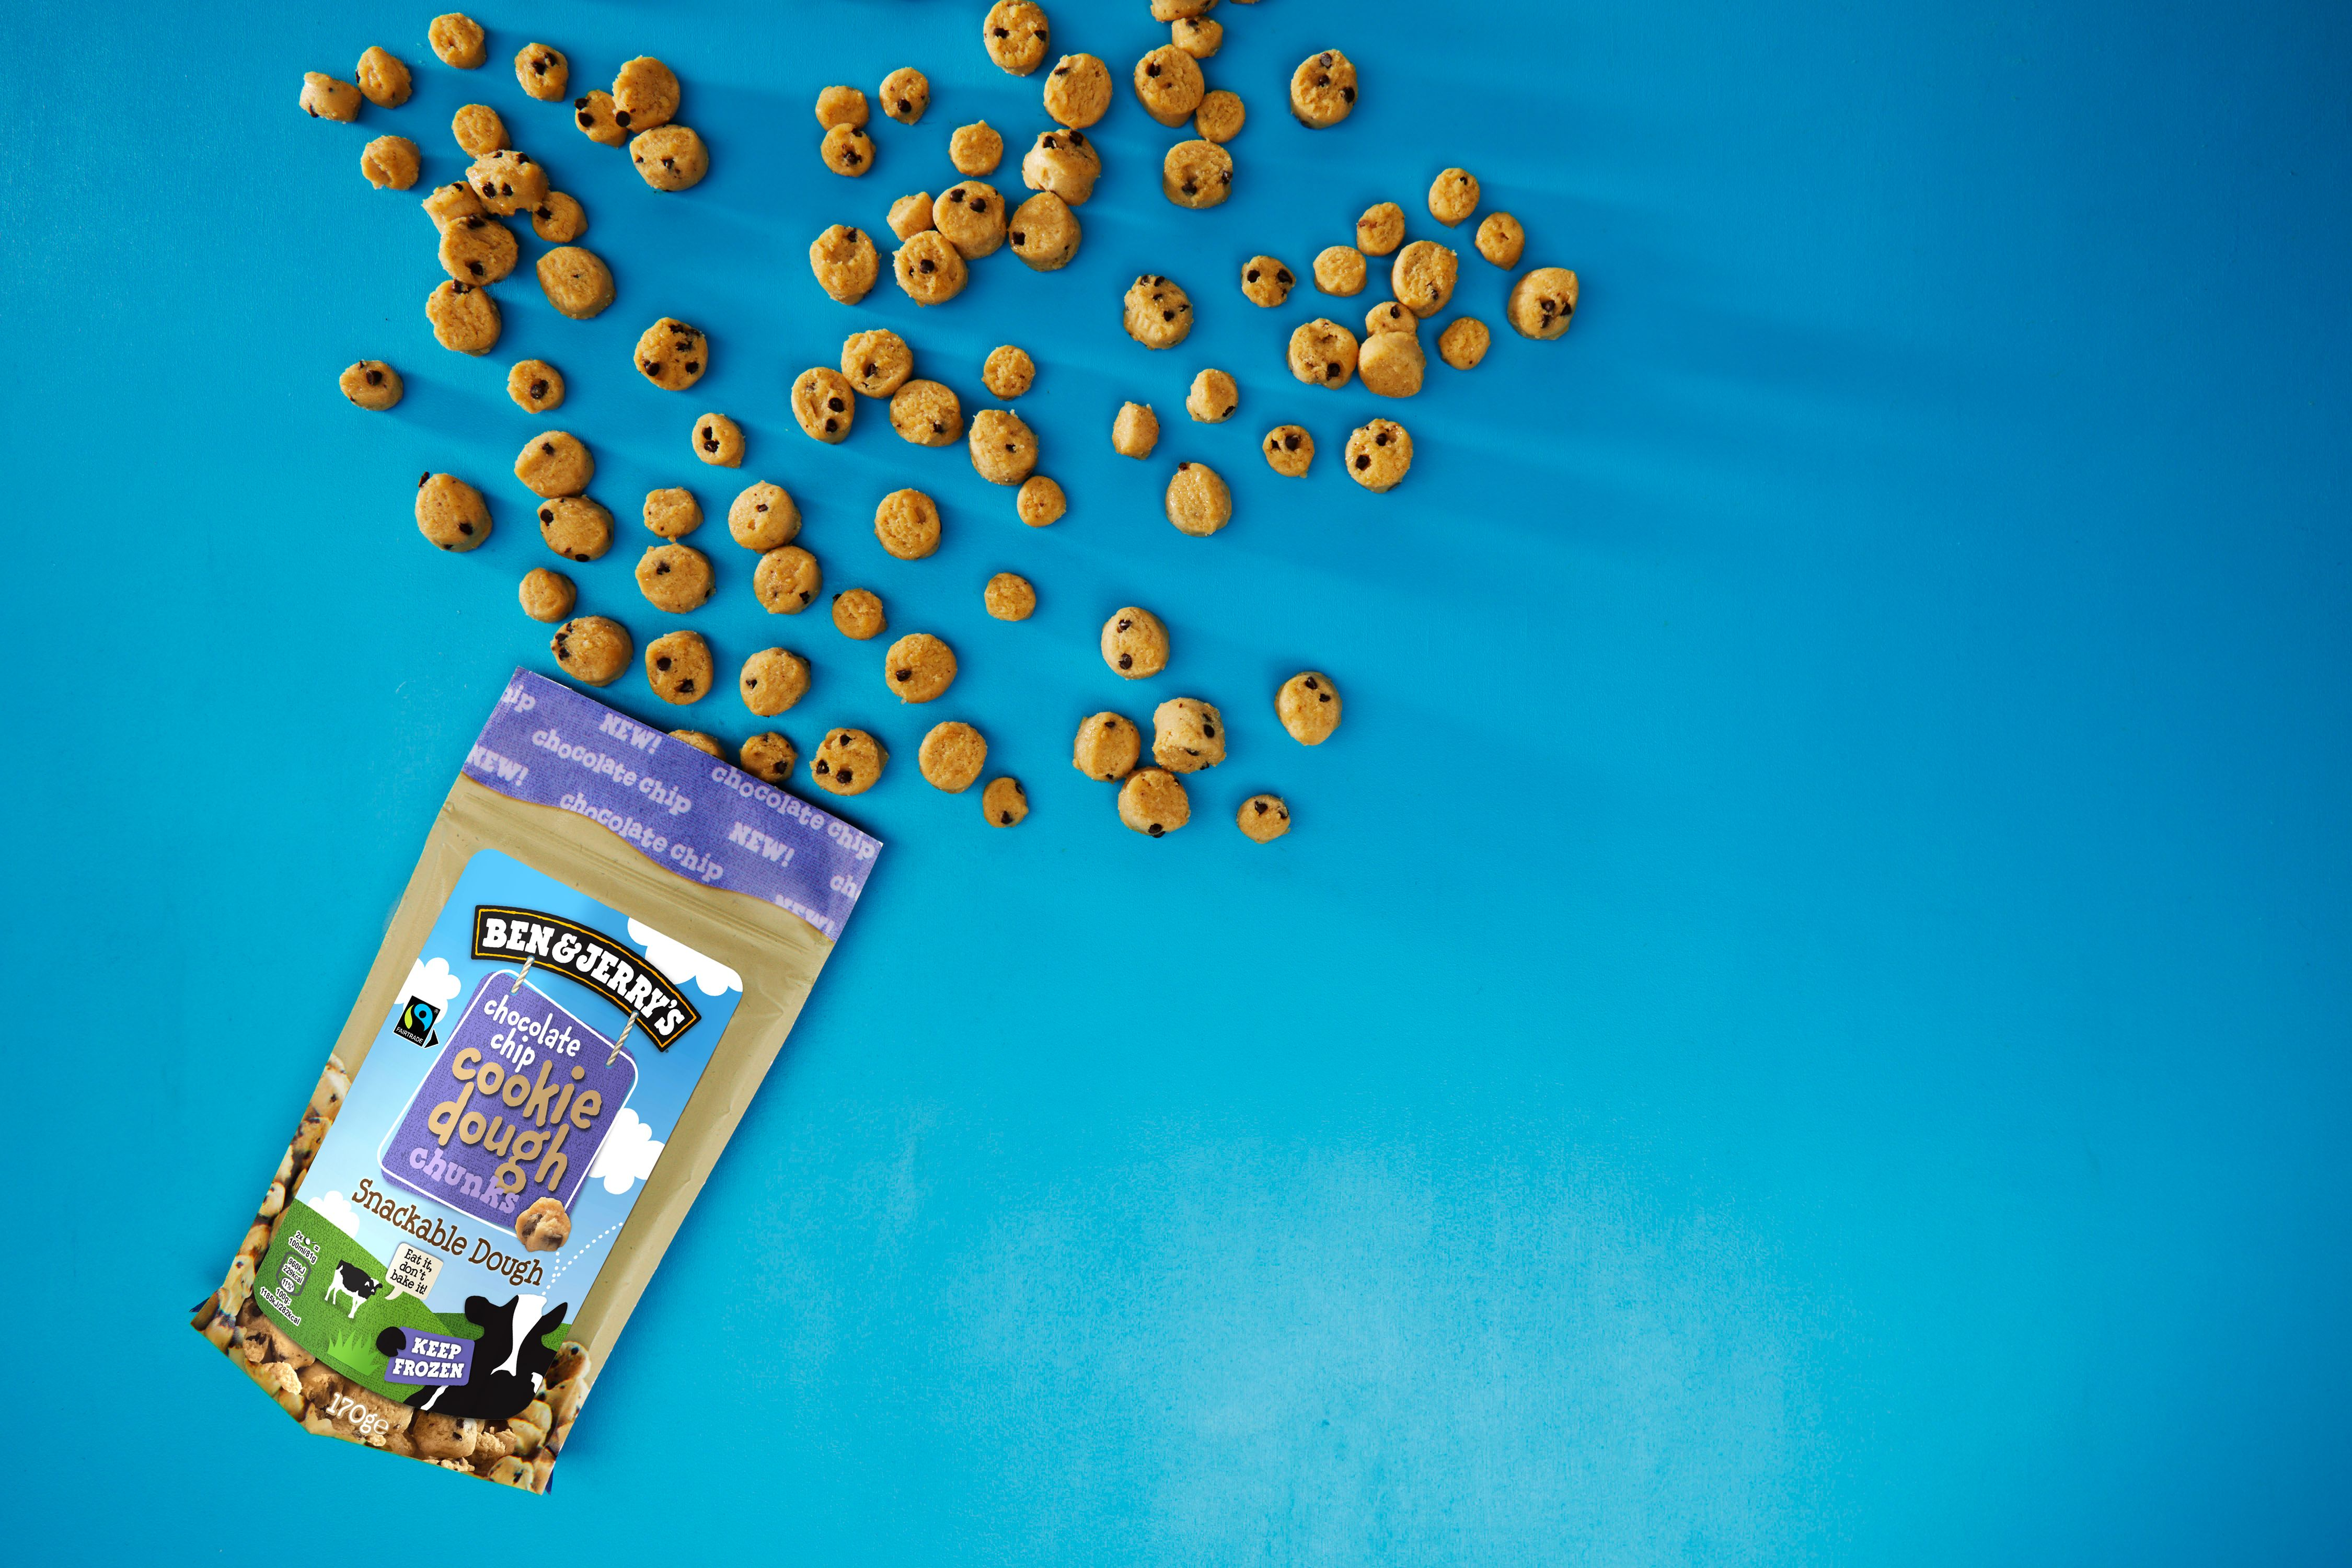 Ben & Jerry's launches Cookie Dough Chunks